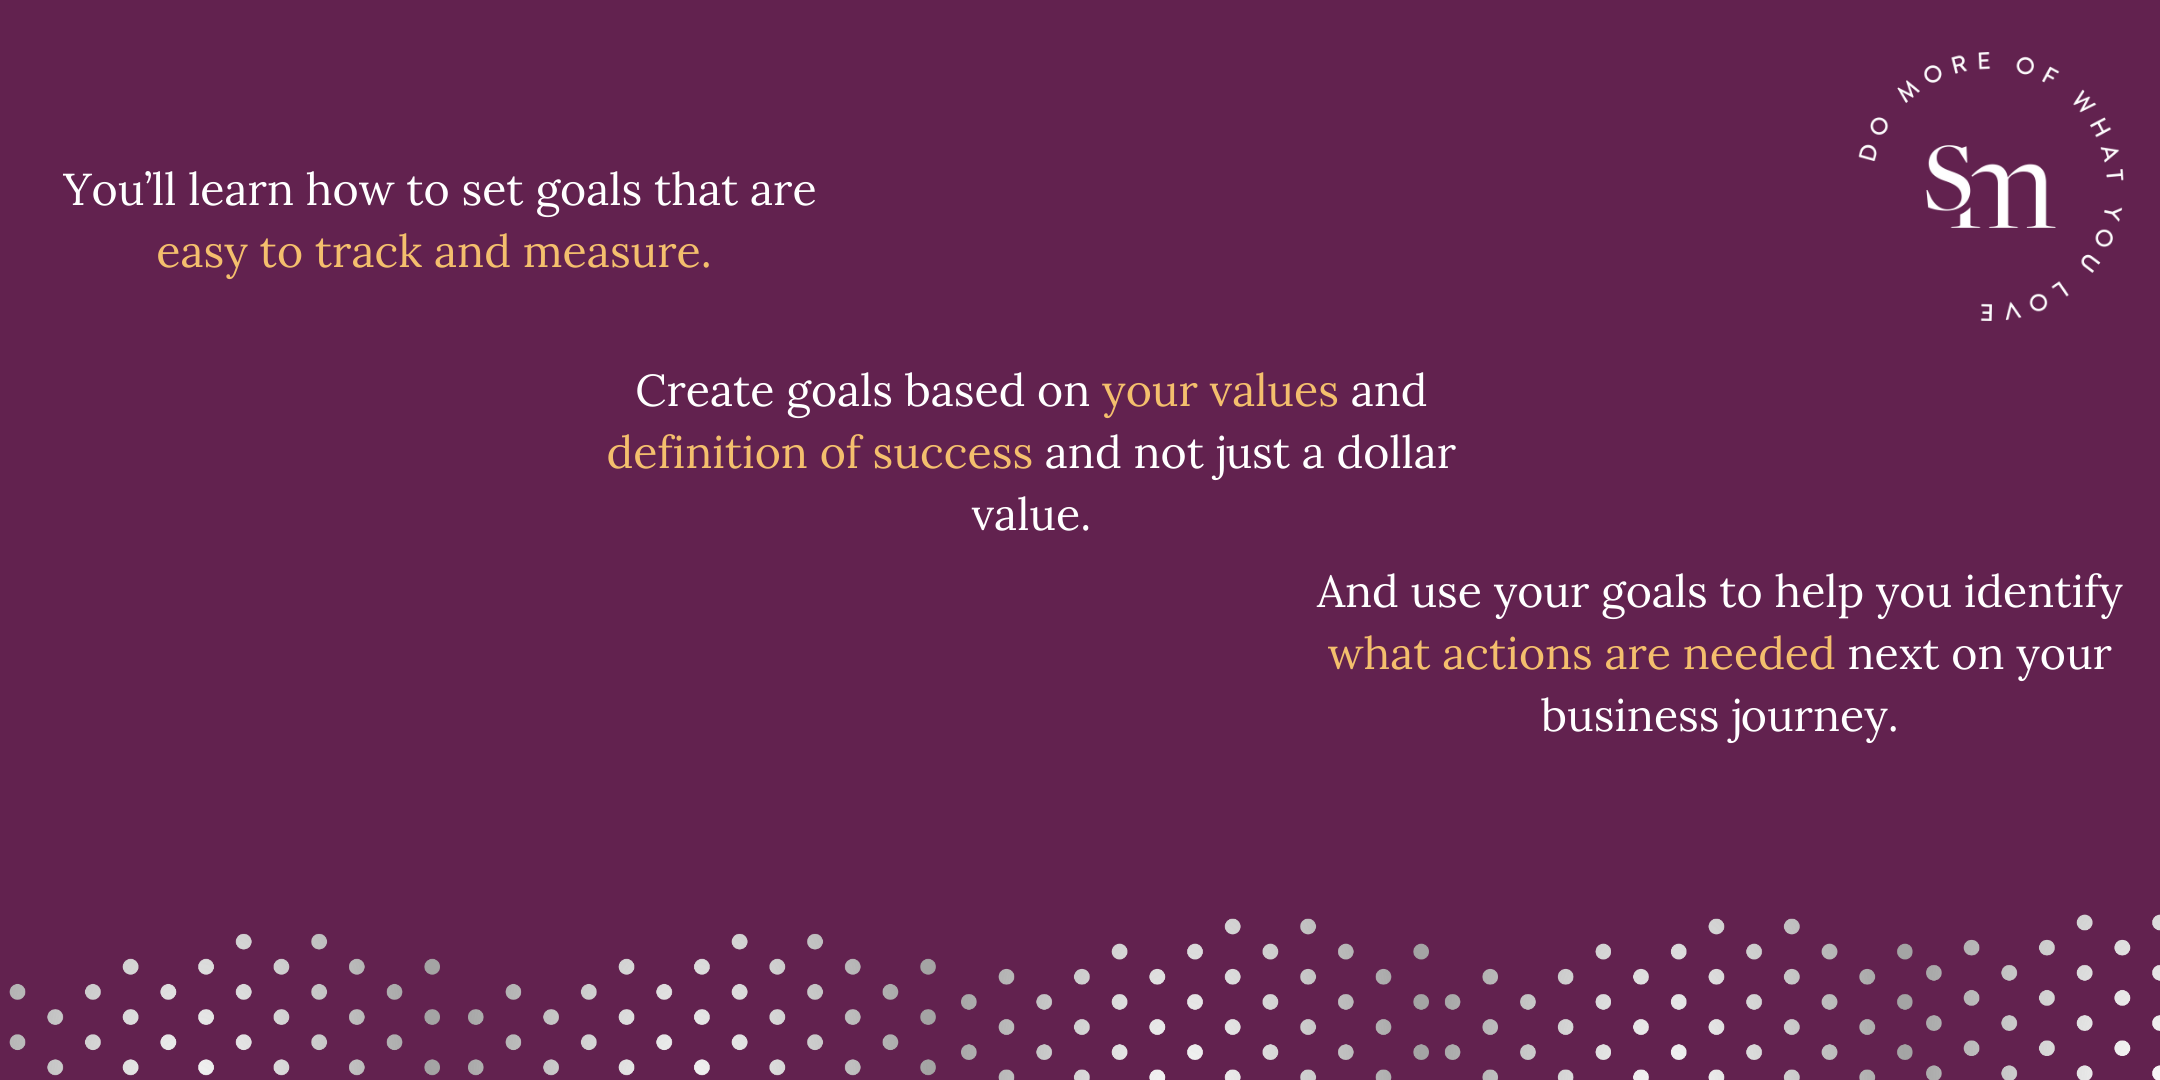 You'll learn how to set goals that are easy to track and measure. Create goals based on your values and definition of success and not just a dollar value. And use your goals to help you identify what actions are needed next on your business journey.